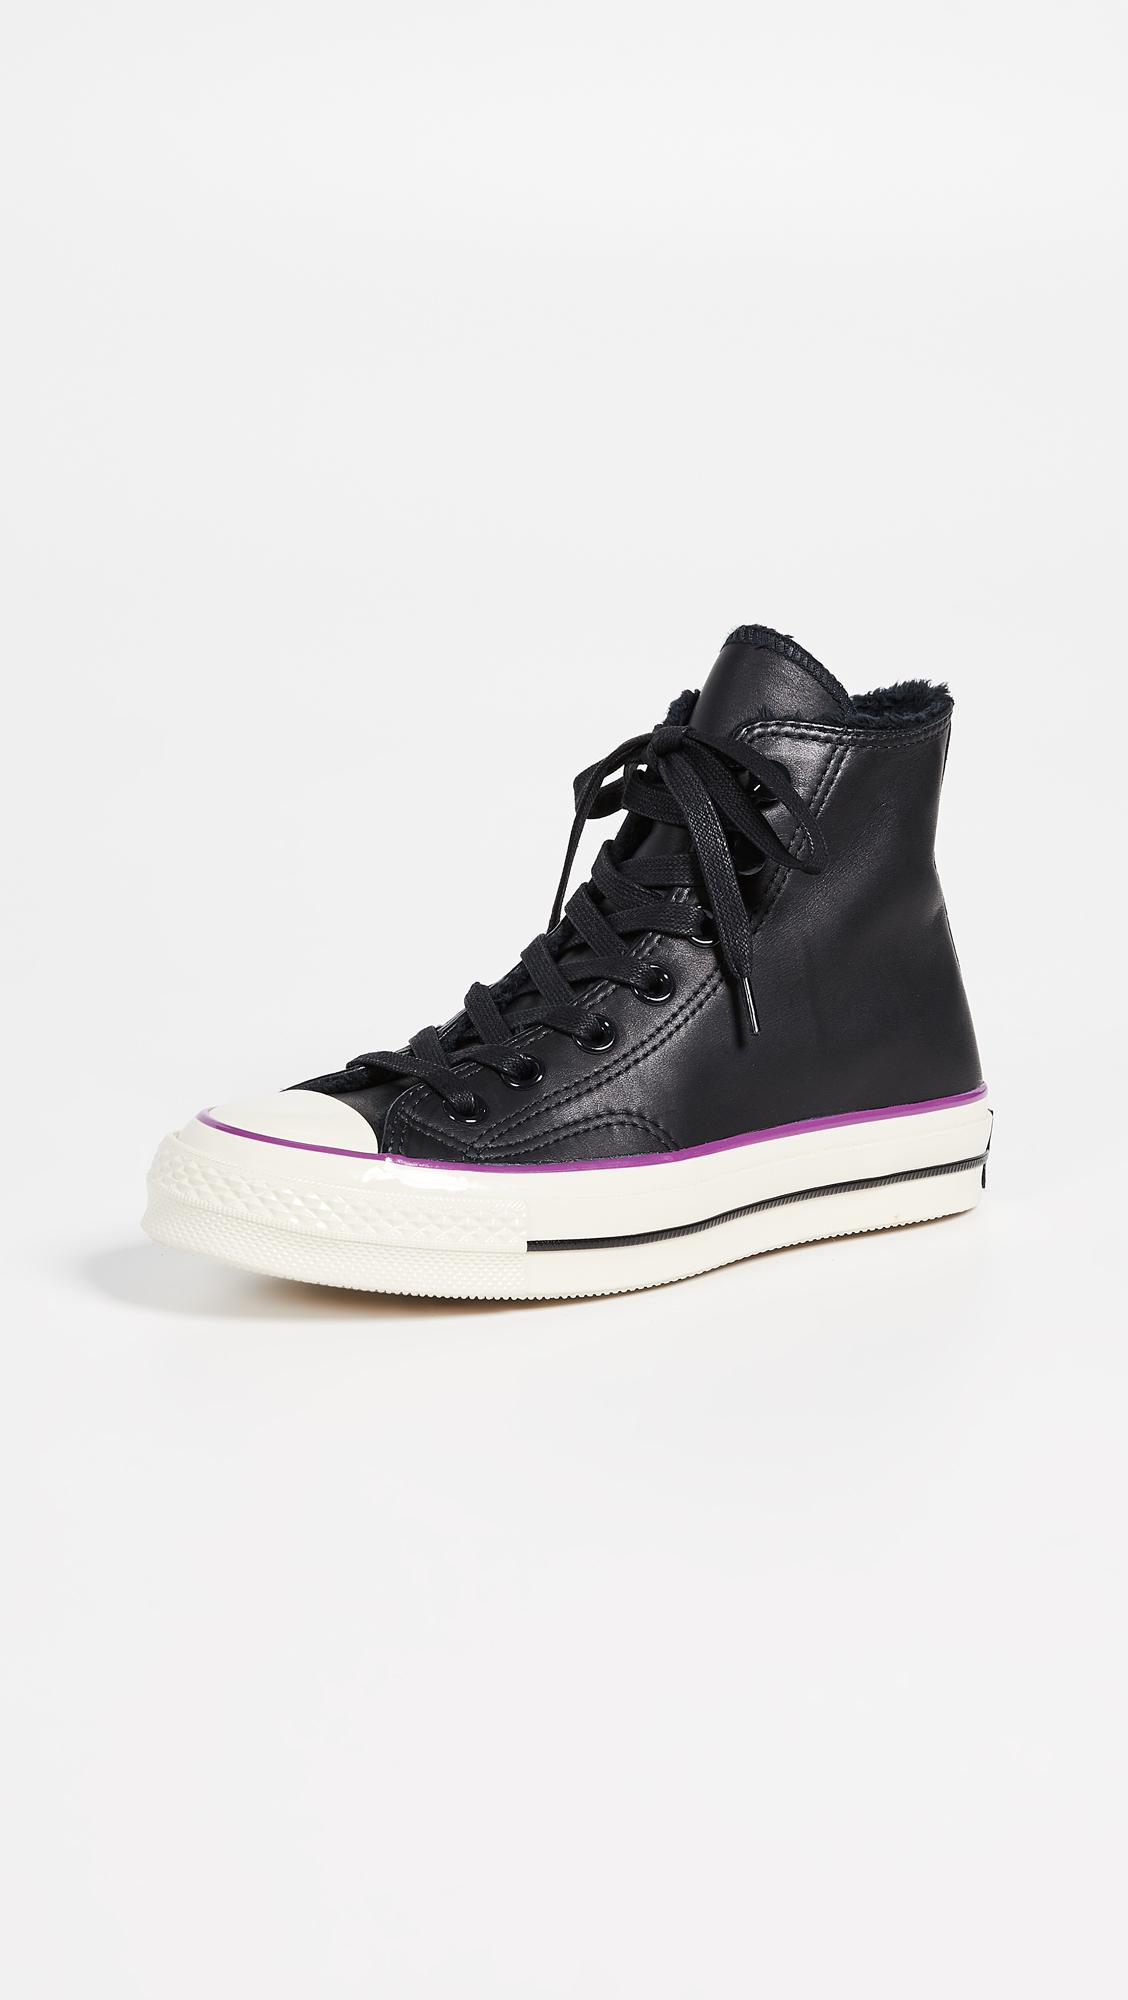 0386a9d714af Converse Chuck 70 High Top Sneakers in Black - Lyst